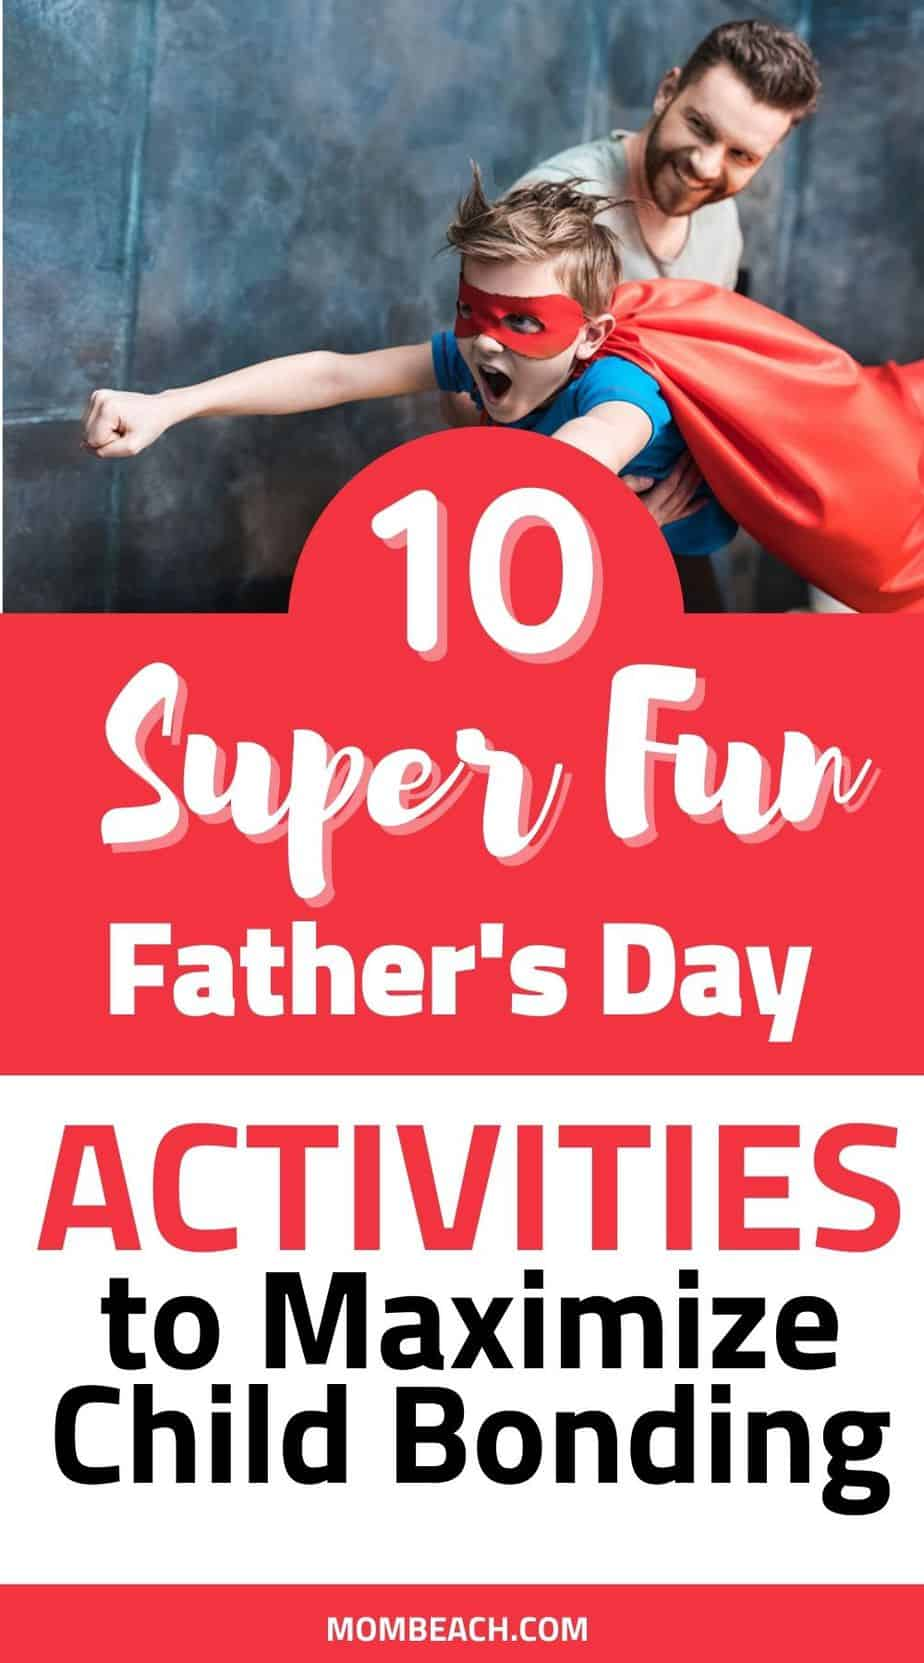 You won't believe how fun these activities are for Father's Day and any other day. It is important that children maximize their bonding with their fathers. These fun and free Father's Day activities are awesome! Father bonding activities are great!